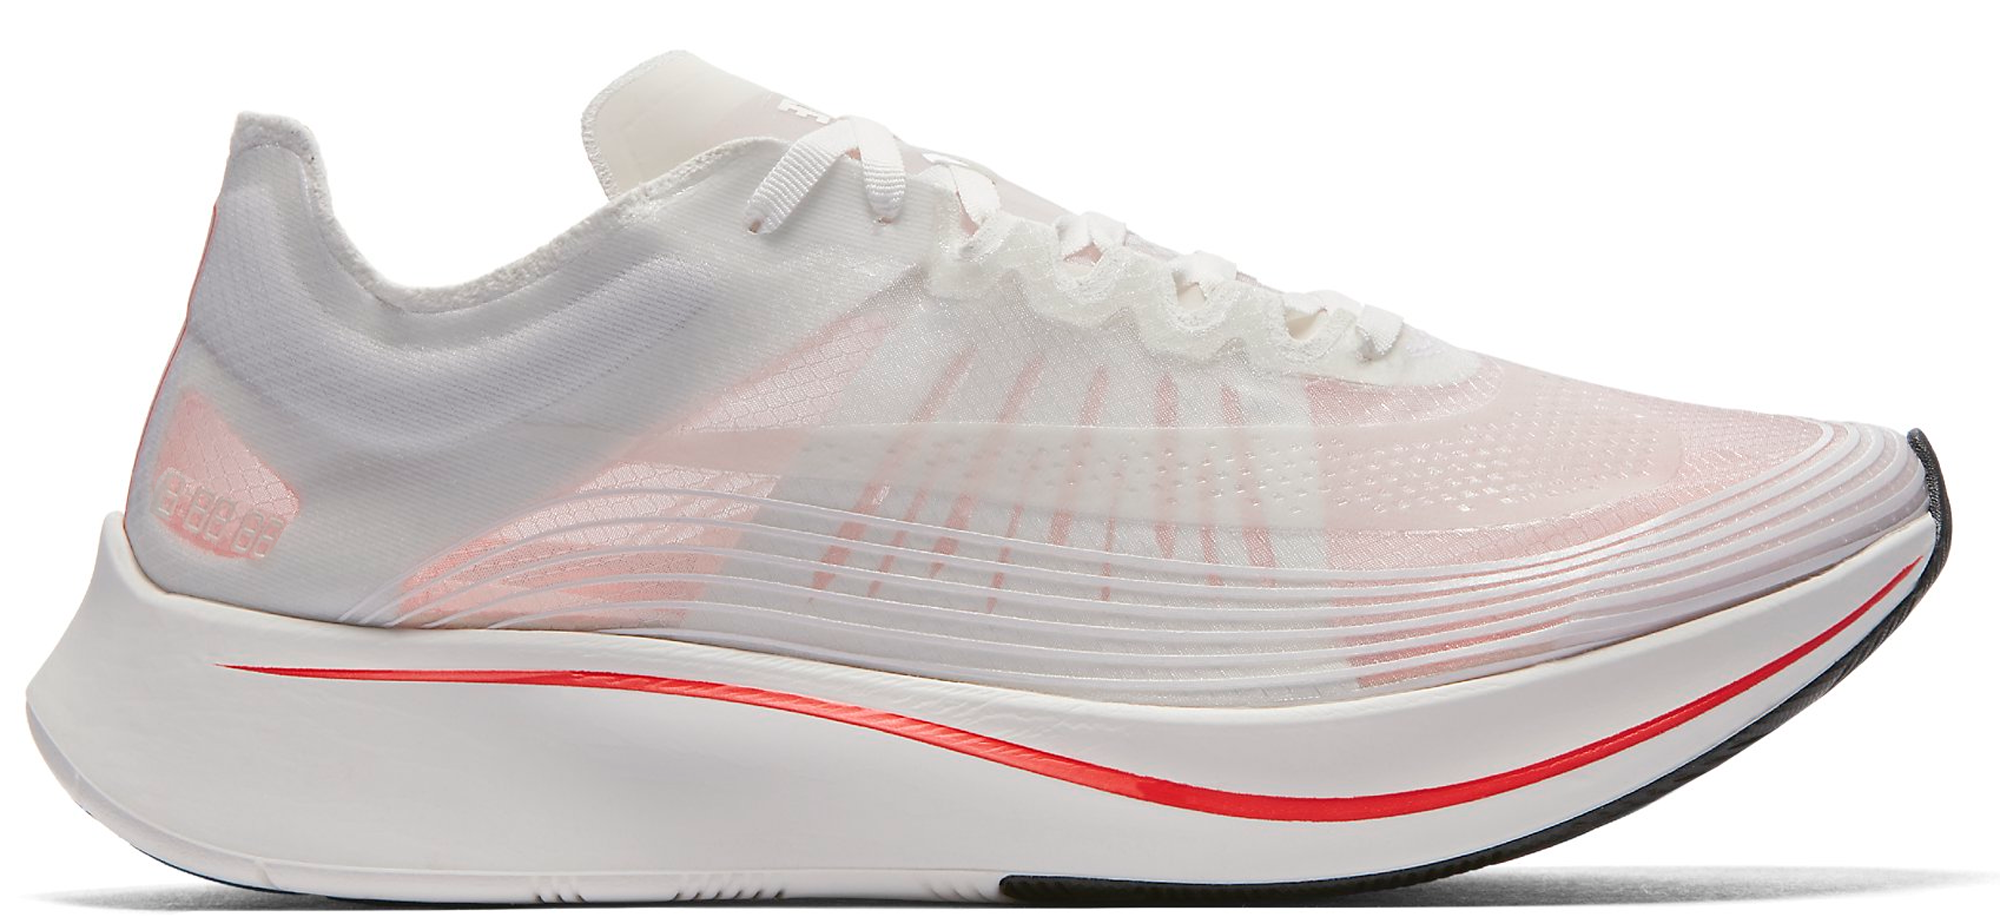 Nike Zoom Fly SP Breaking 2